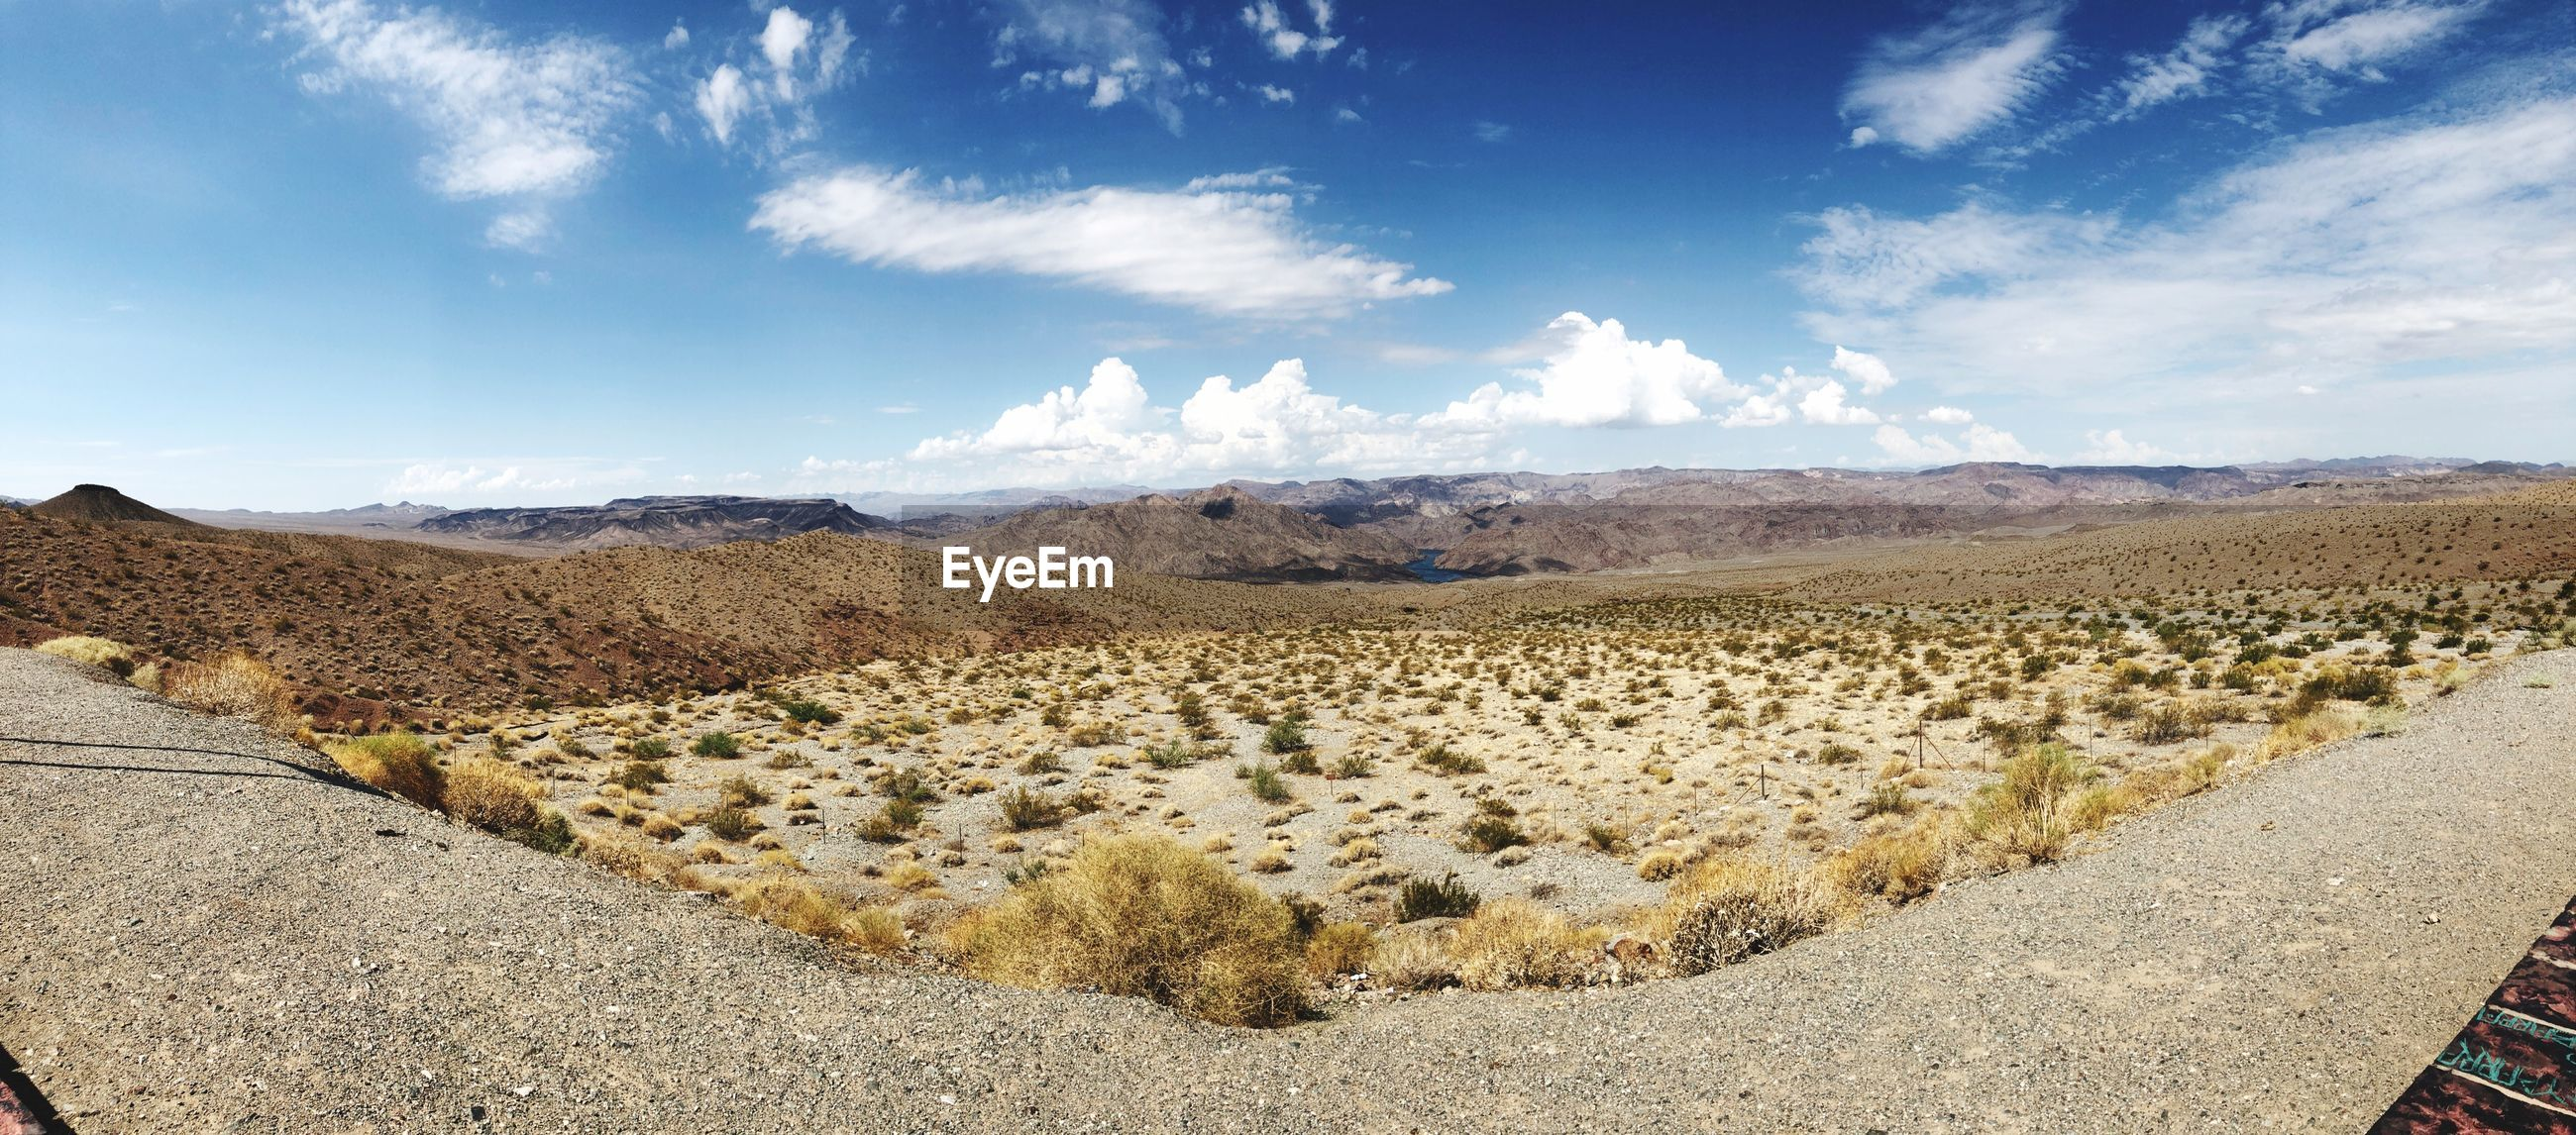 PANORAMIC VIEW OF ROAD AMIDST DESERT AGAINST SKY